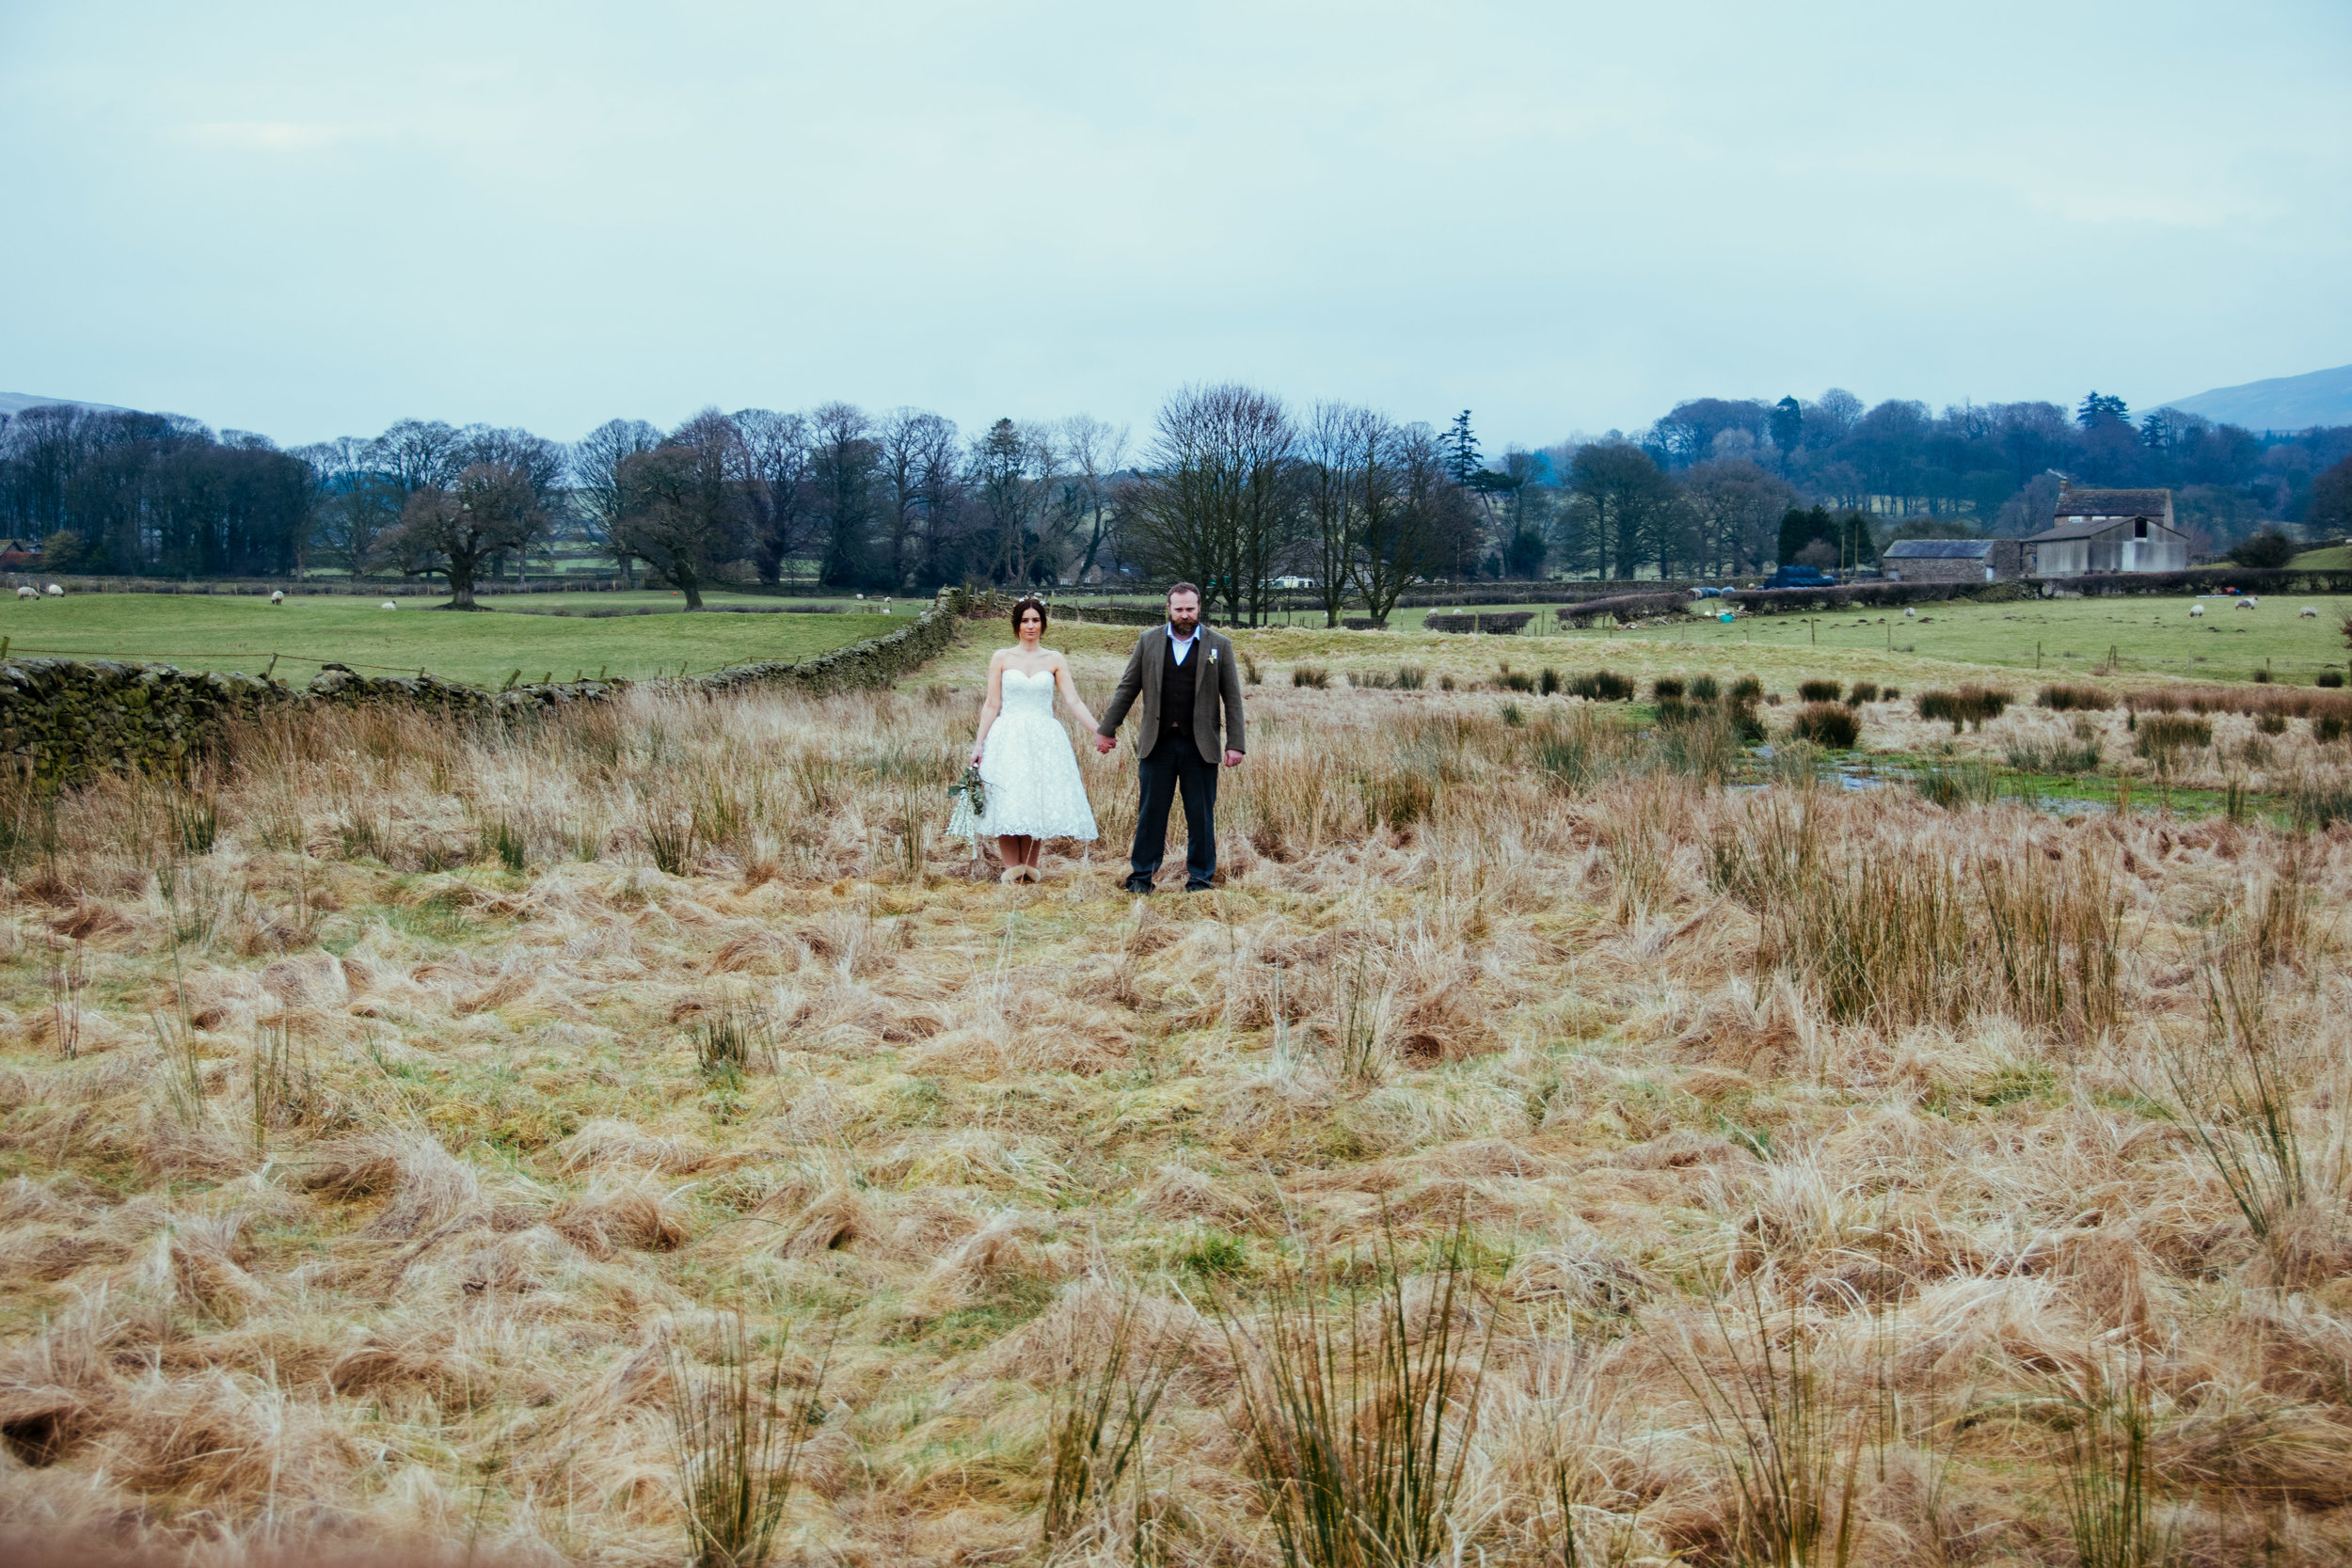 Hipping hall wedding photographer winderemere wedding photographer lake district wedding photographer Forest wedding photographer (1 of 1).jpg